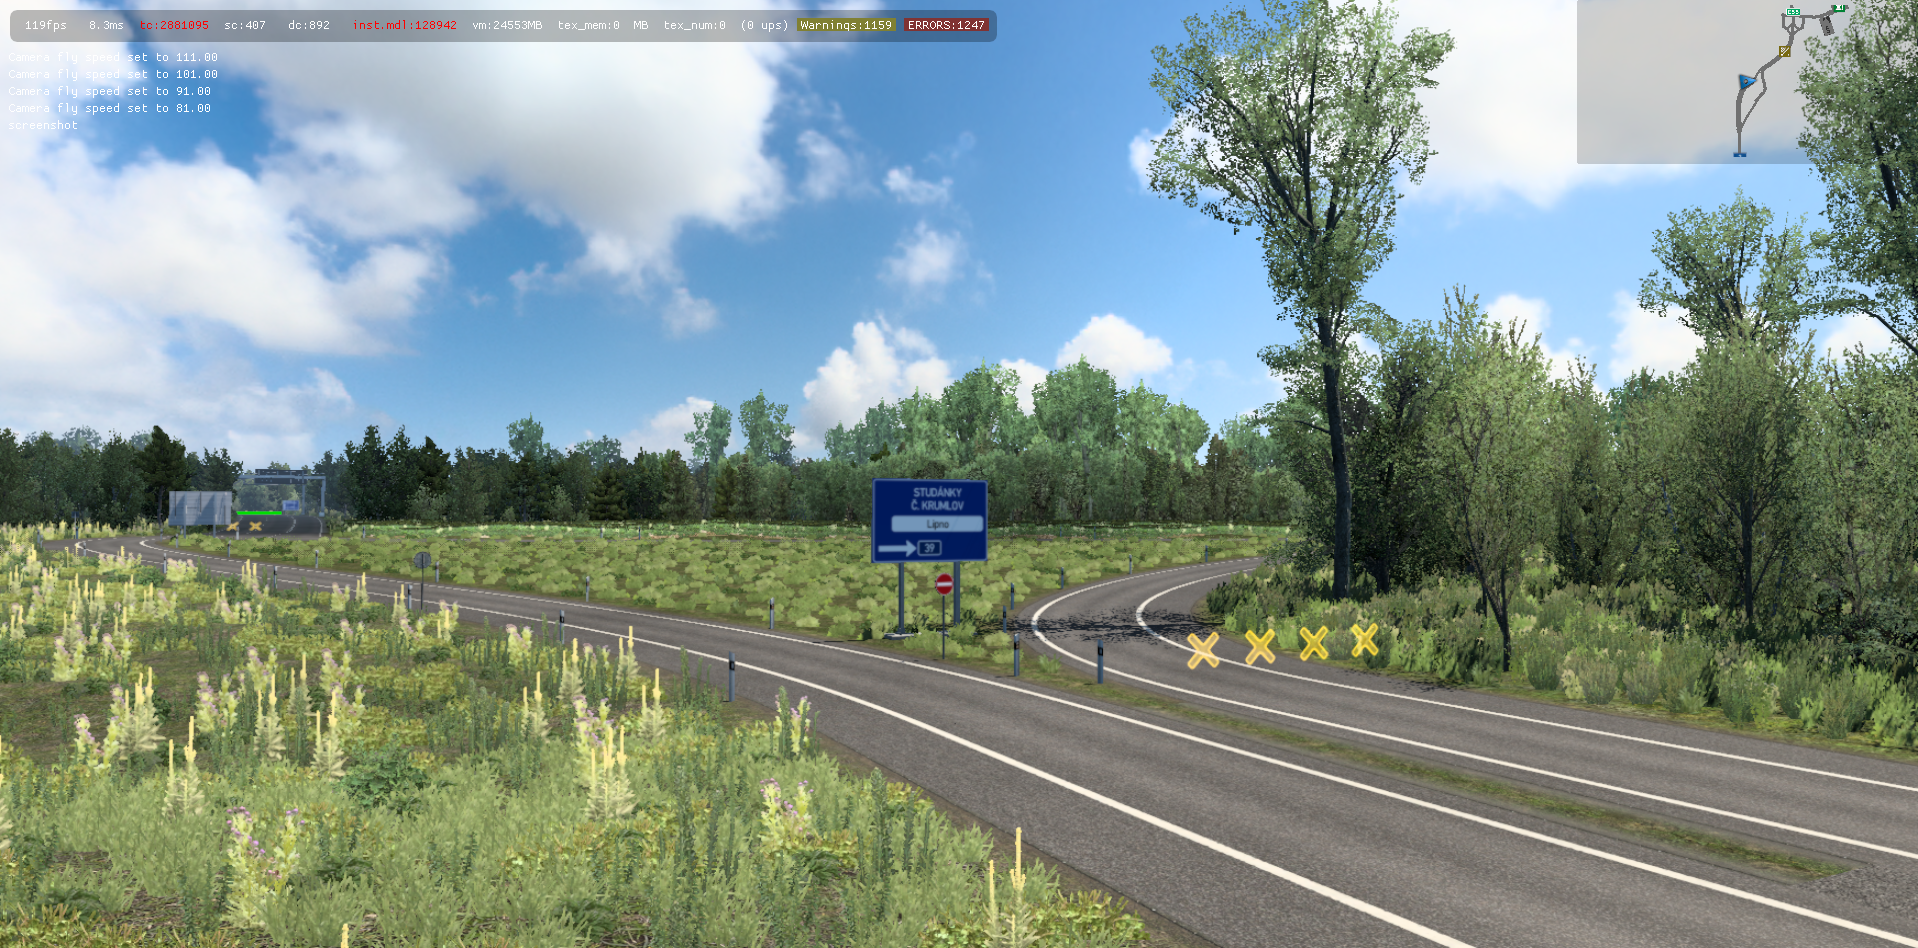 ets2_20210822_203343_00.png